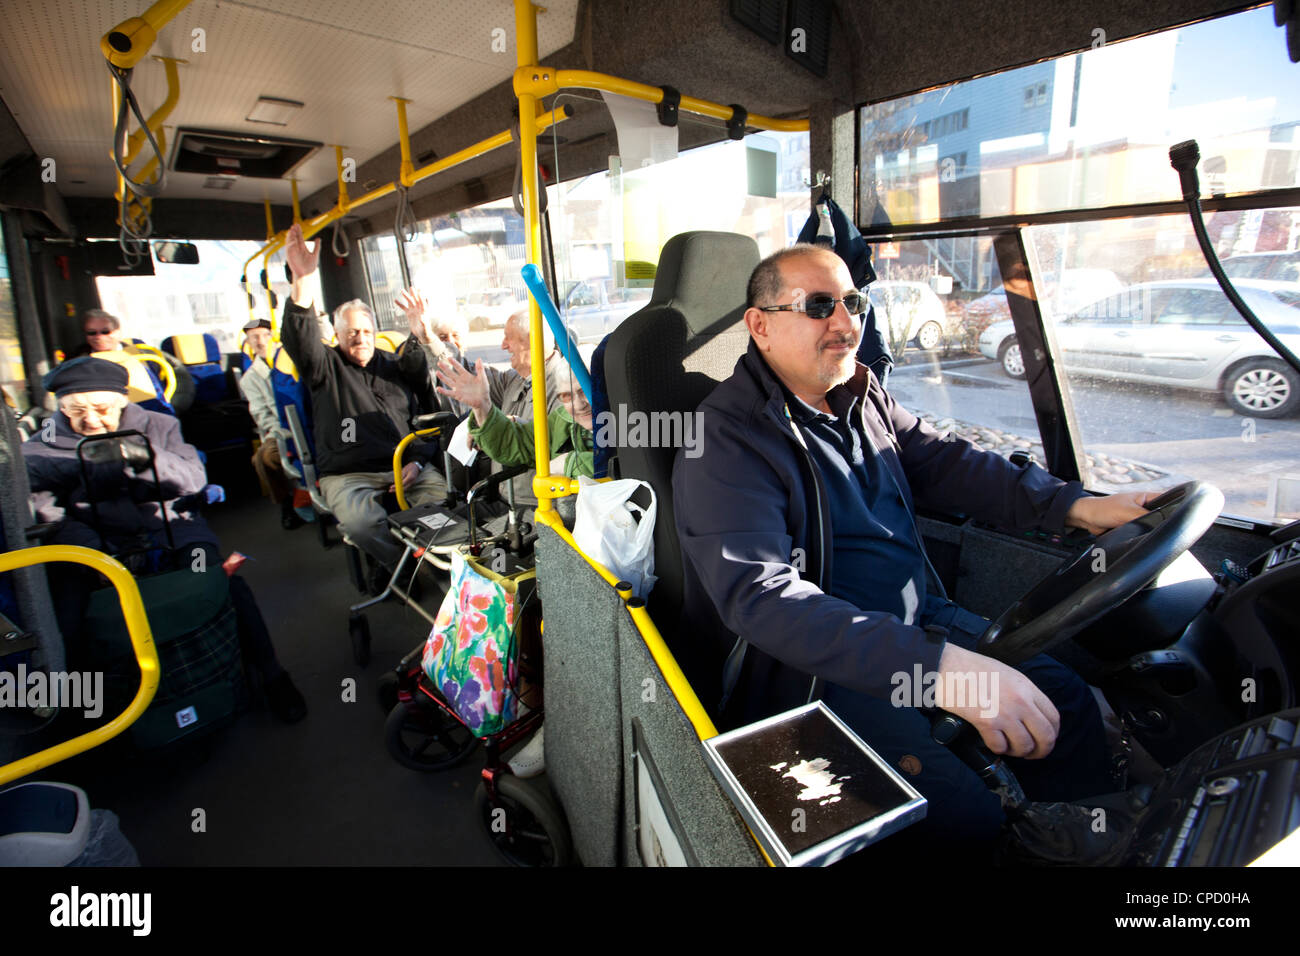 Bus driver with passengers - Stock Image